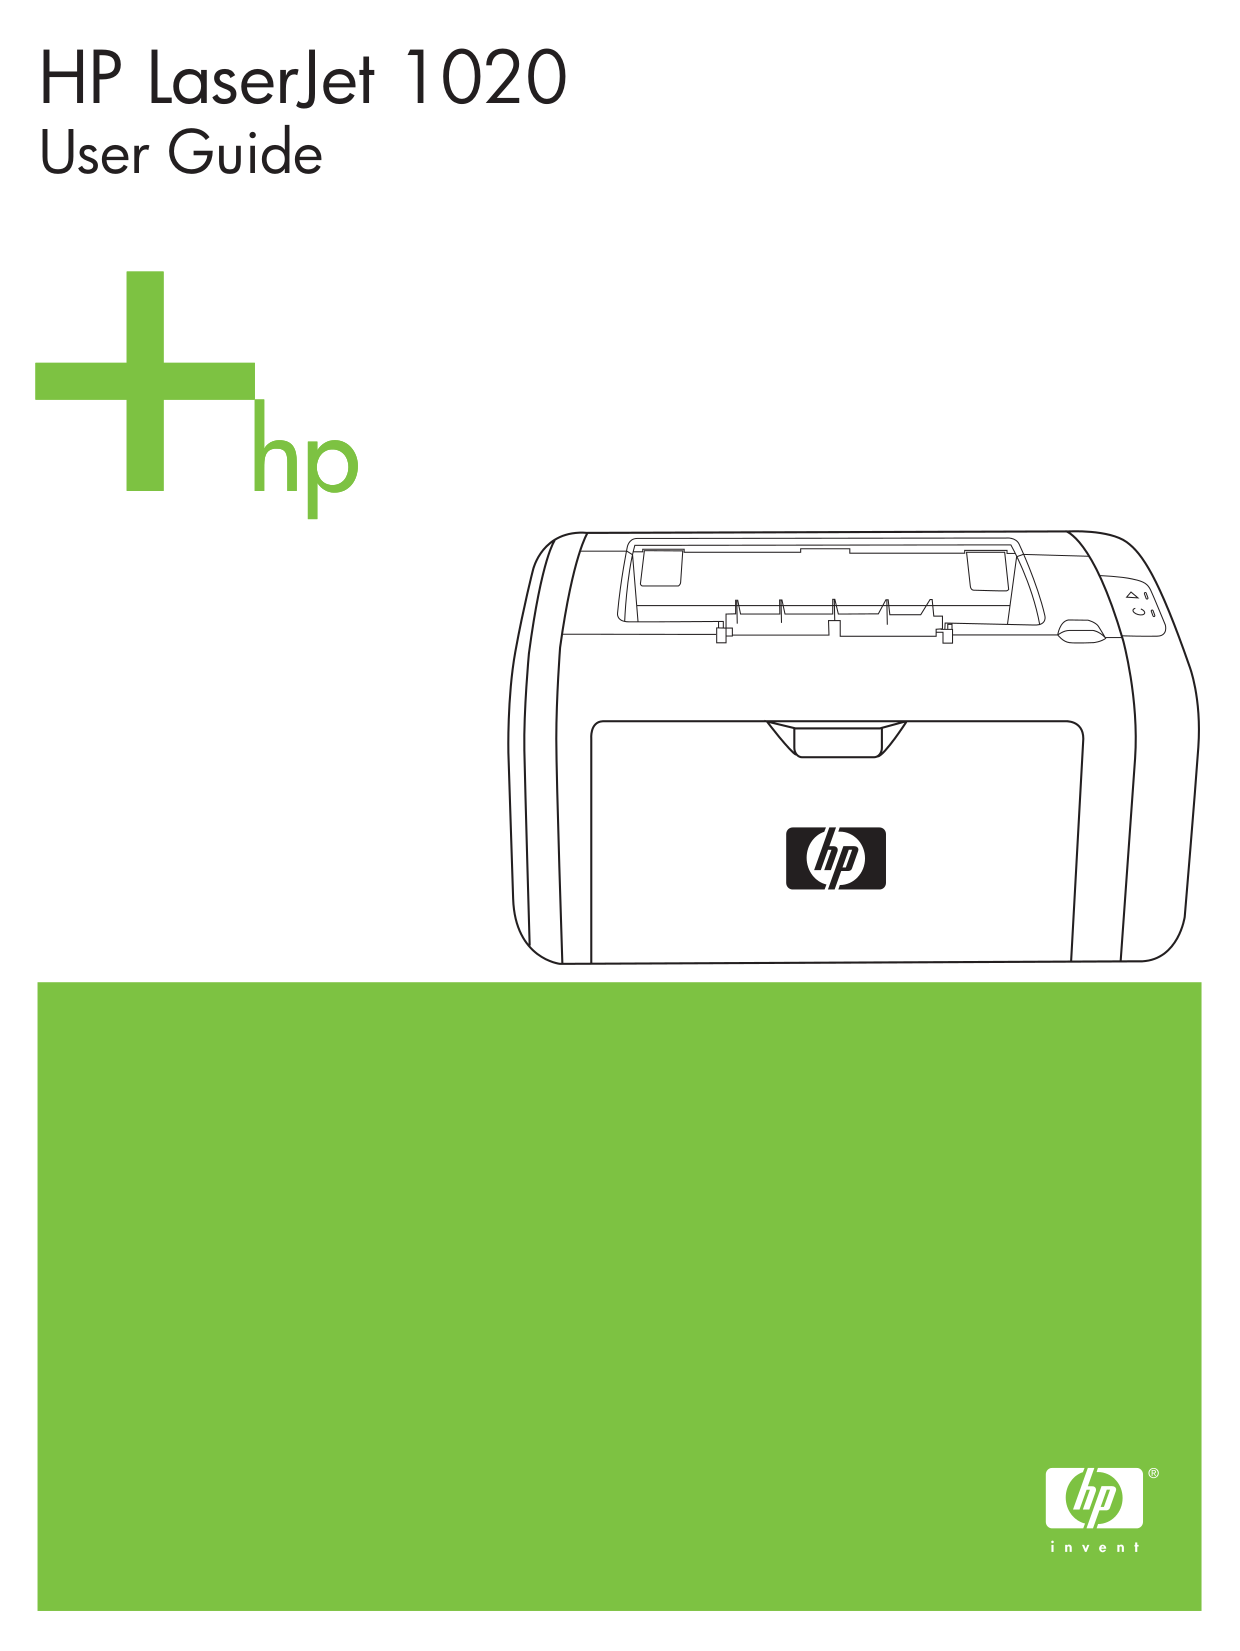 HP Officejet Pro 8500 All-in-One Printer - A909a User Guides